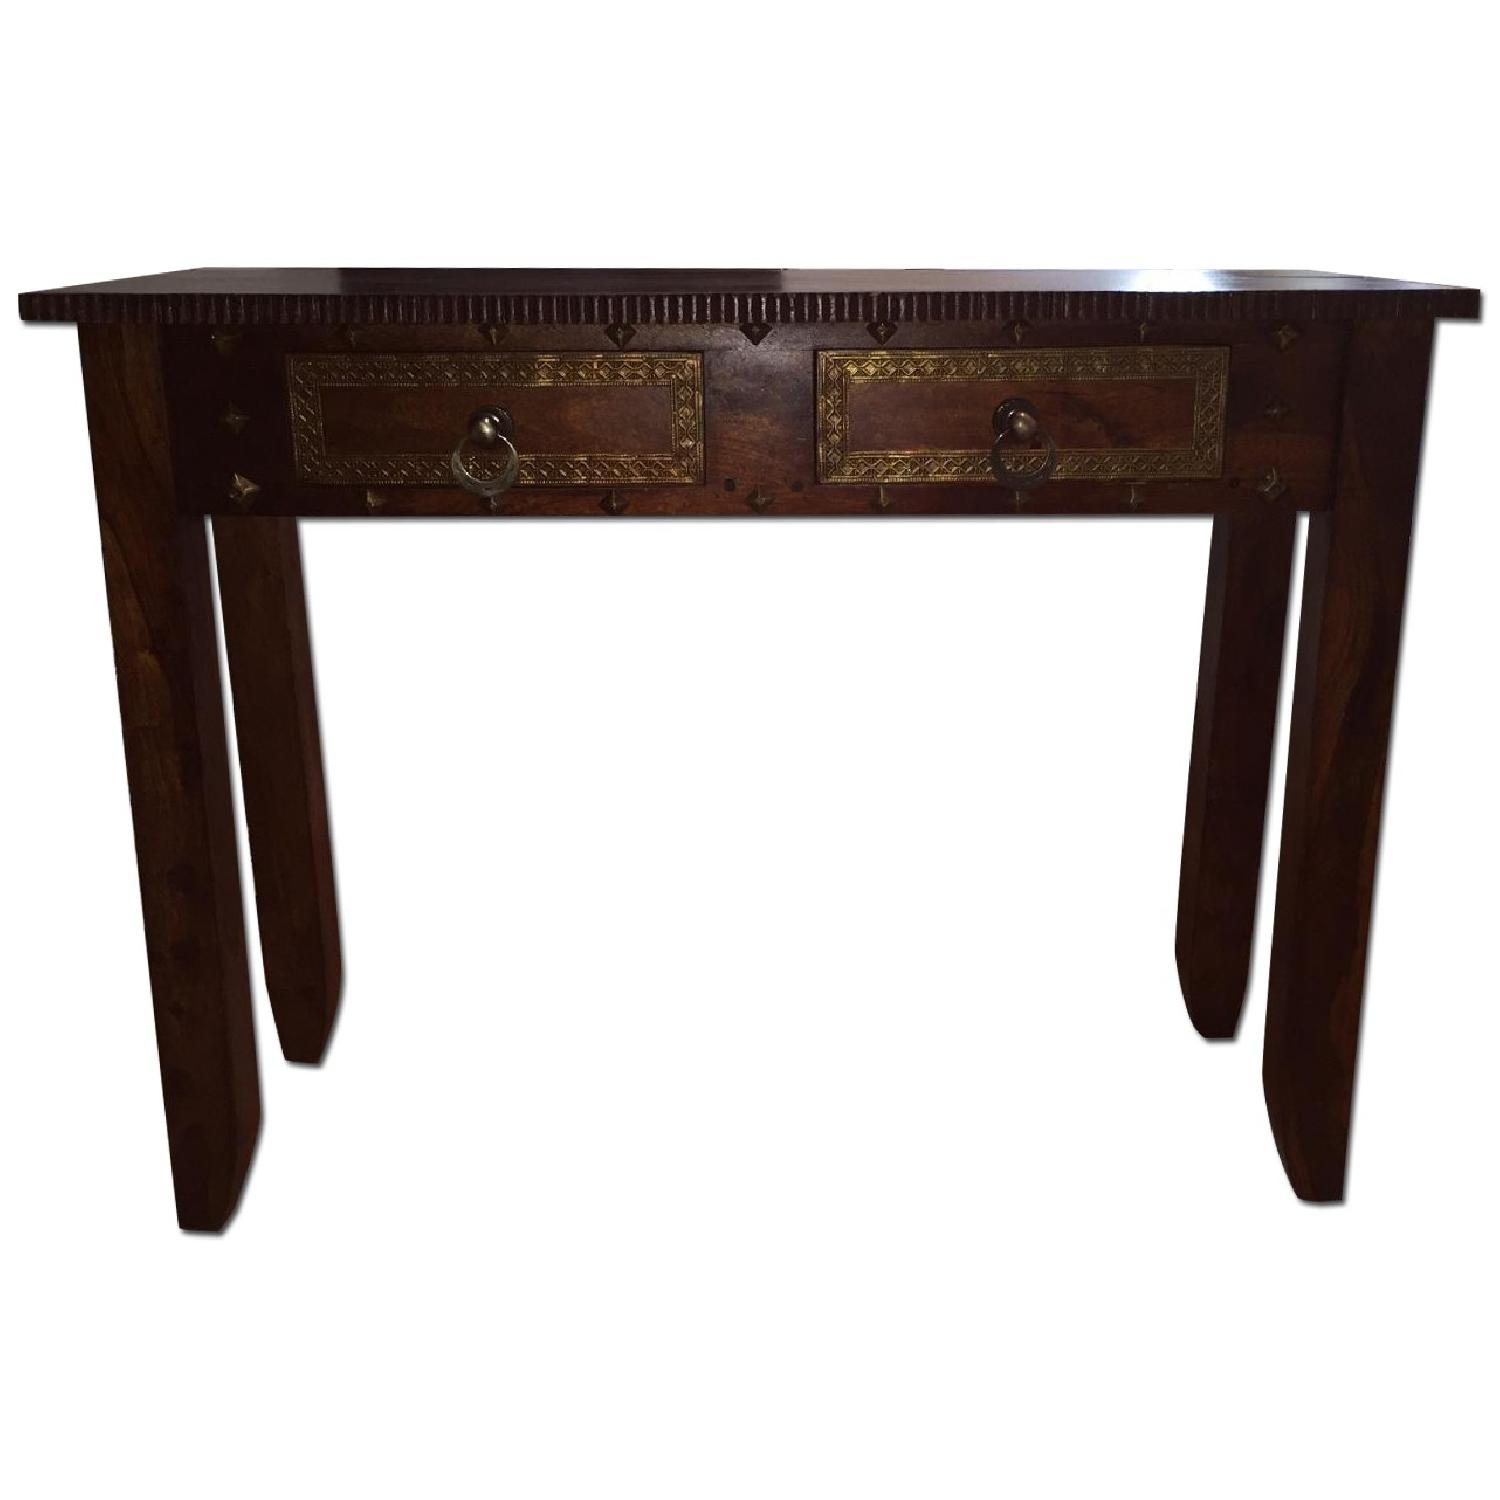 Pier 1 Vintage Heera Indian Handcrafted Console Table - image-0